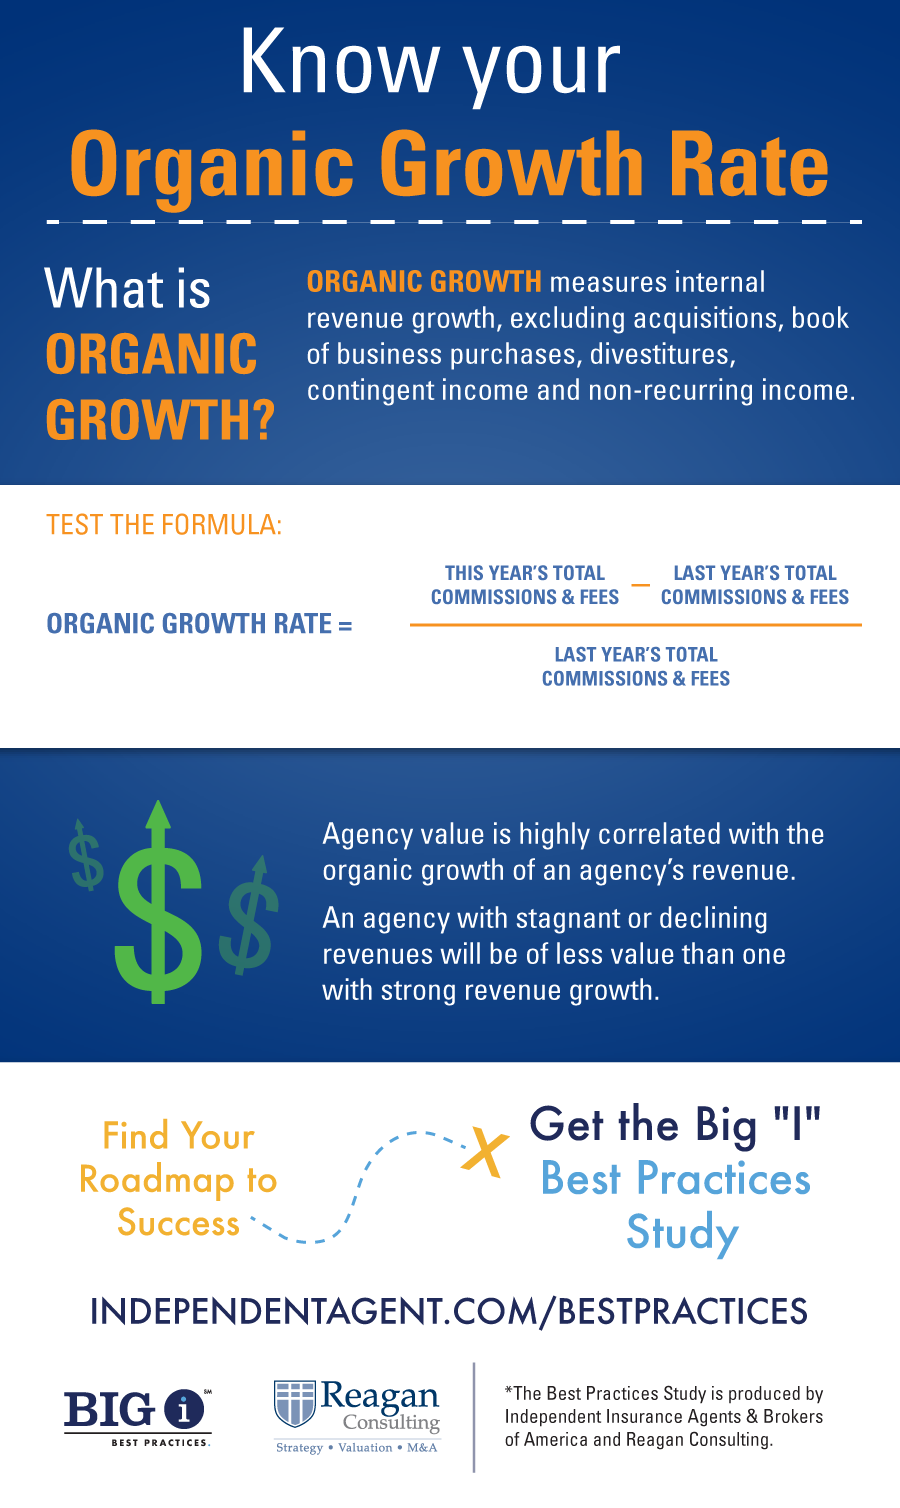 BP-KnowYourOrganicGrowth17-t.jpg